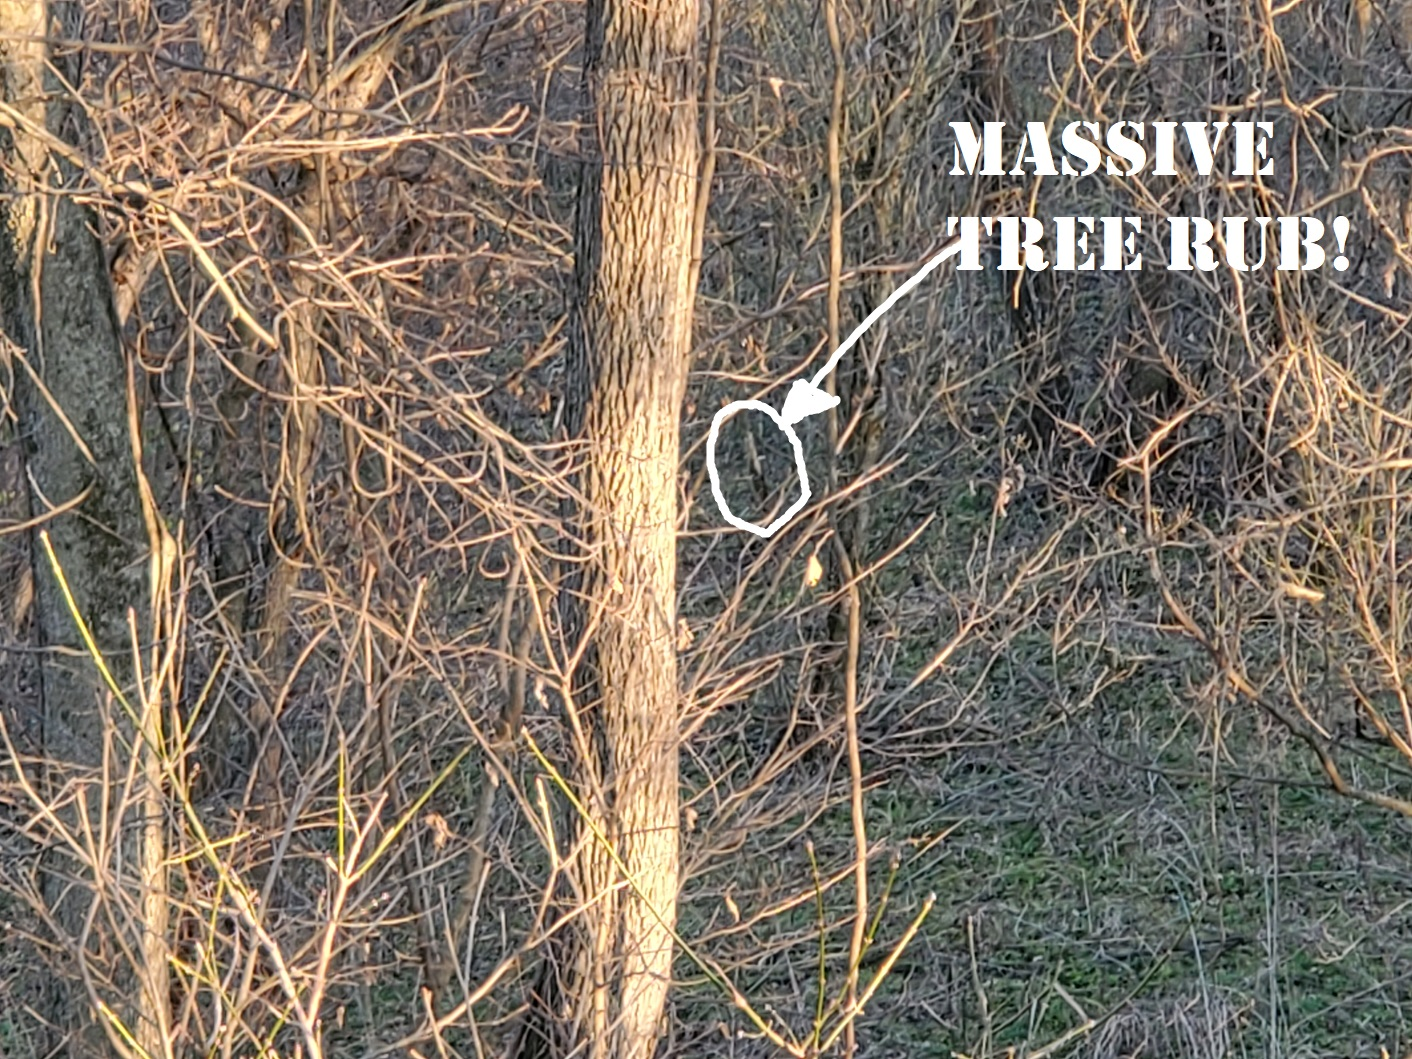 20191207_162718 Massive tree rub.jpg